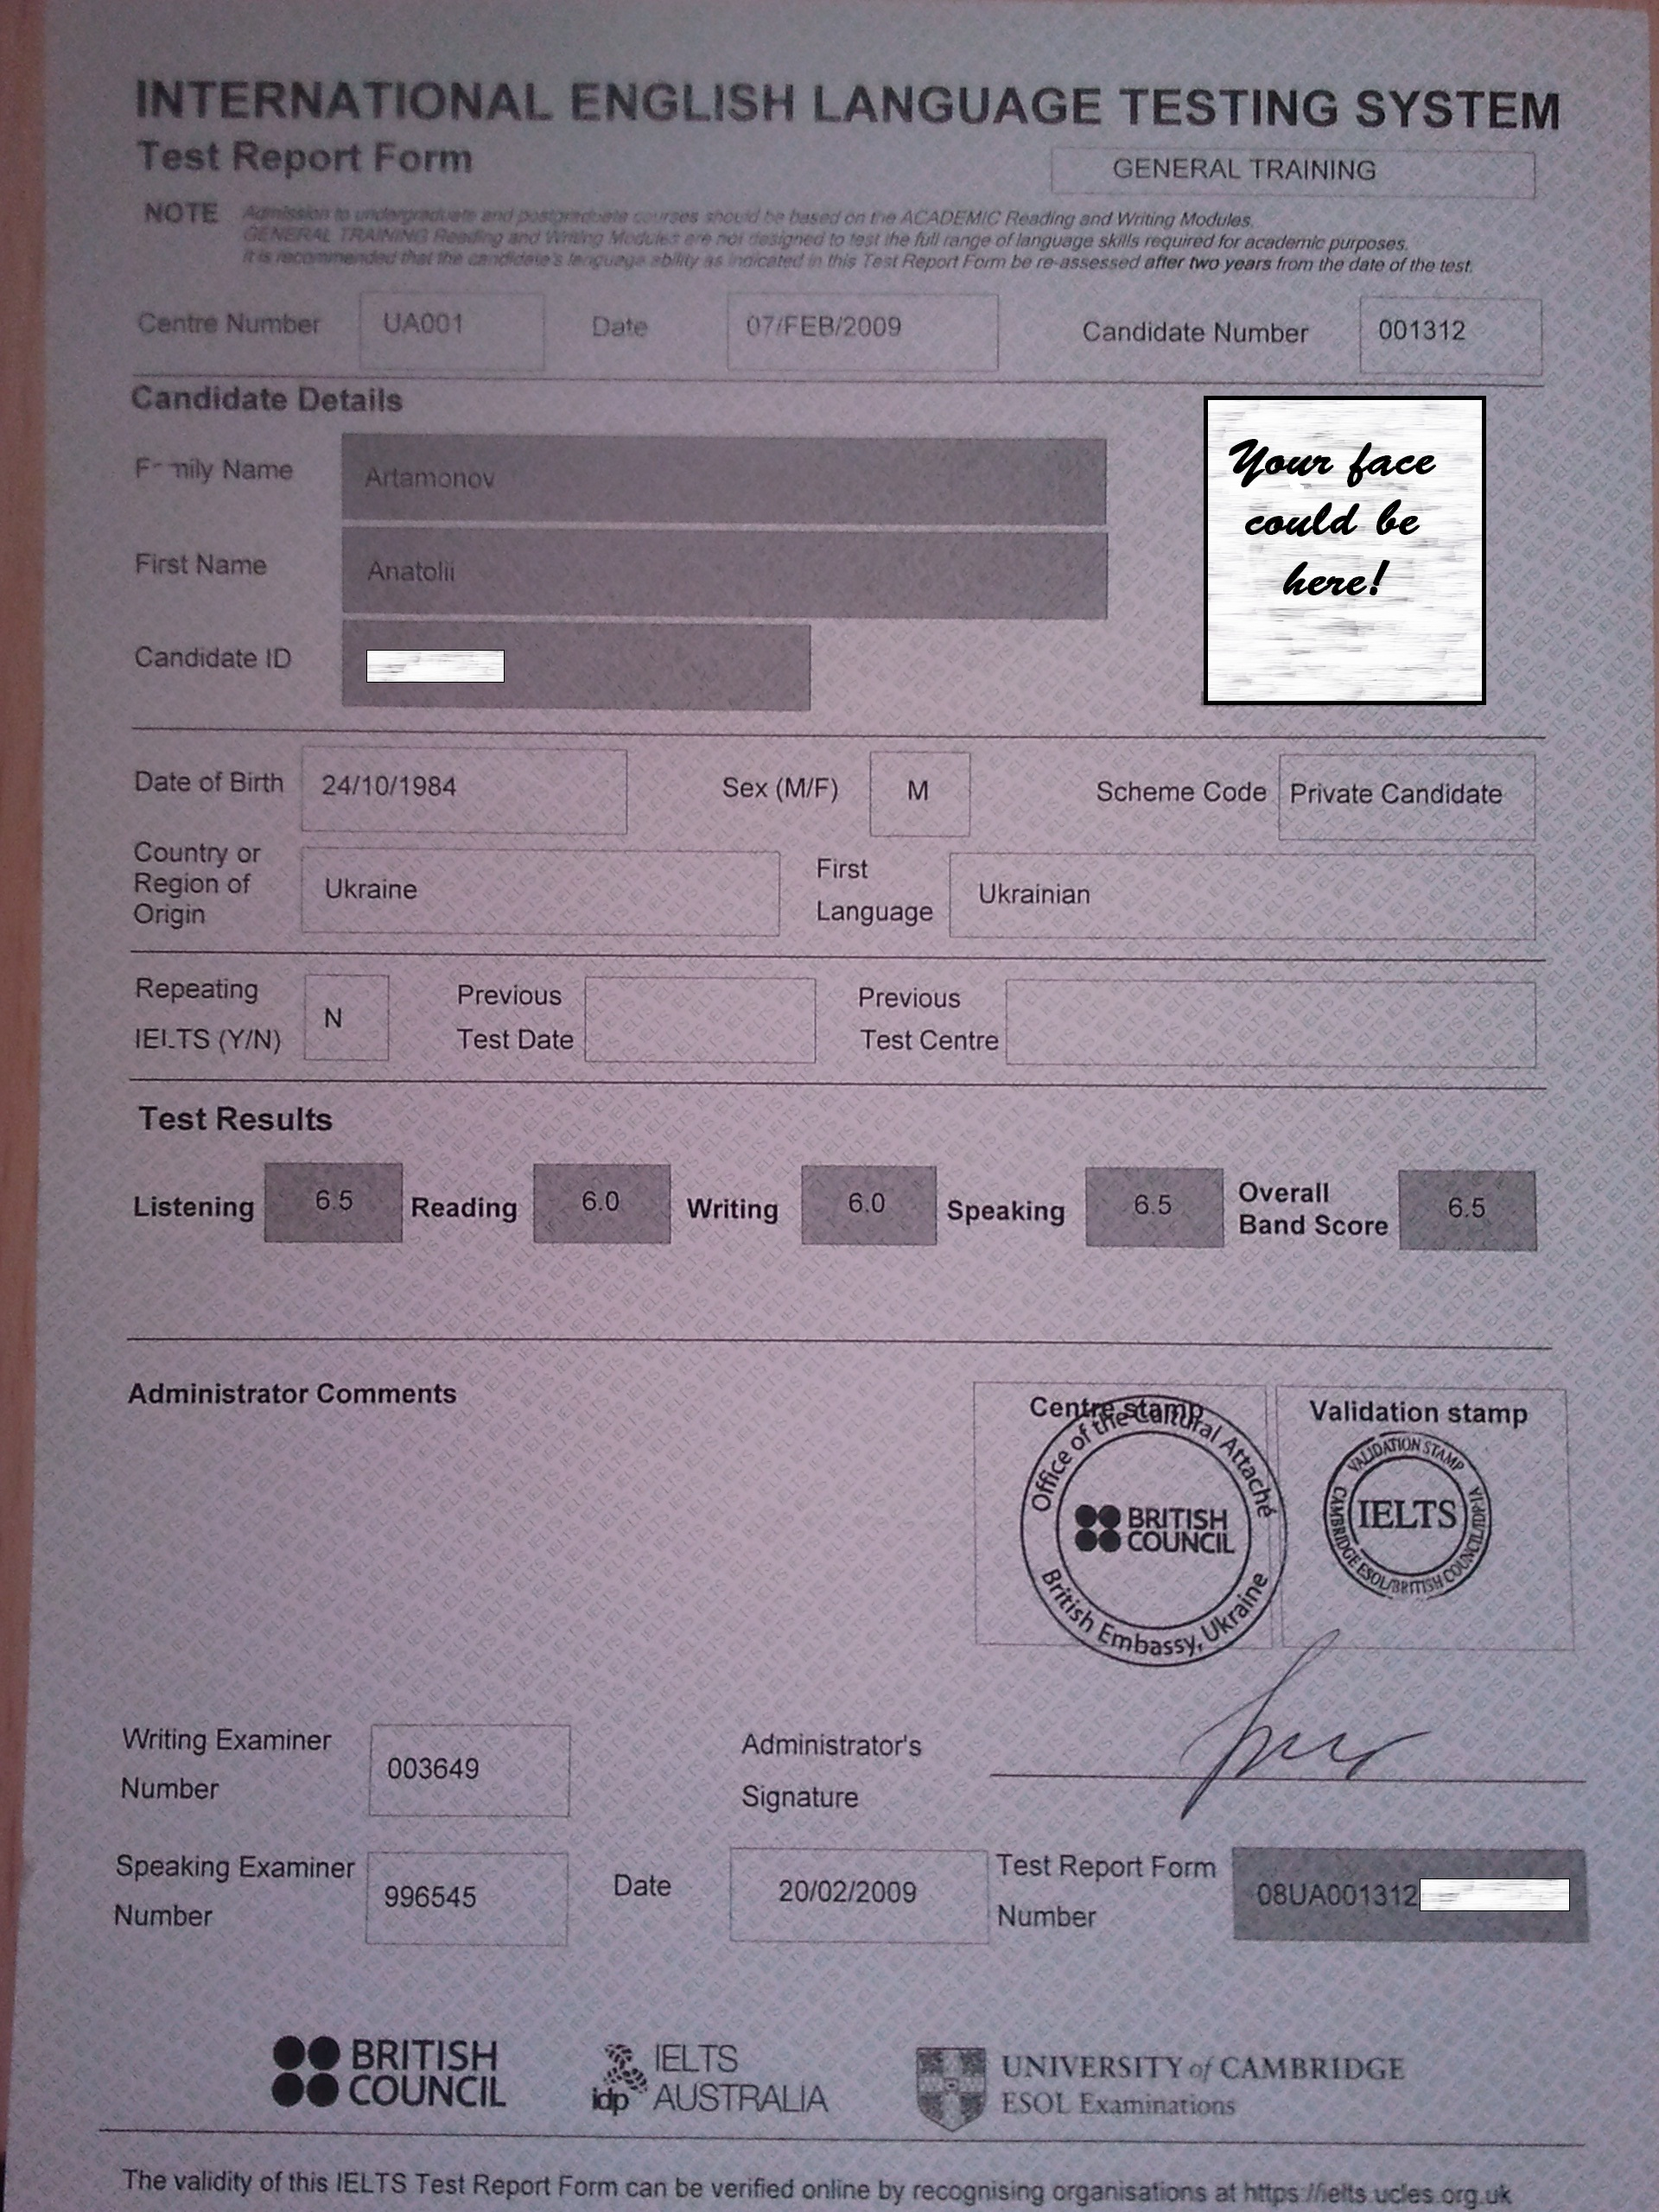 Anatolii's IELTS Results